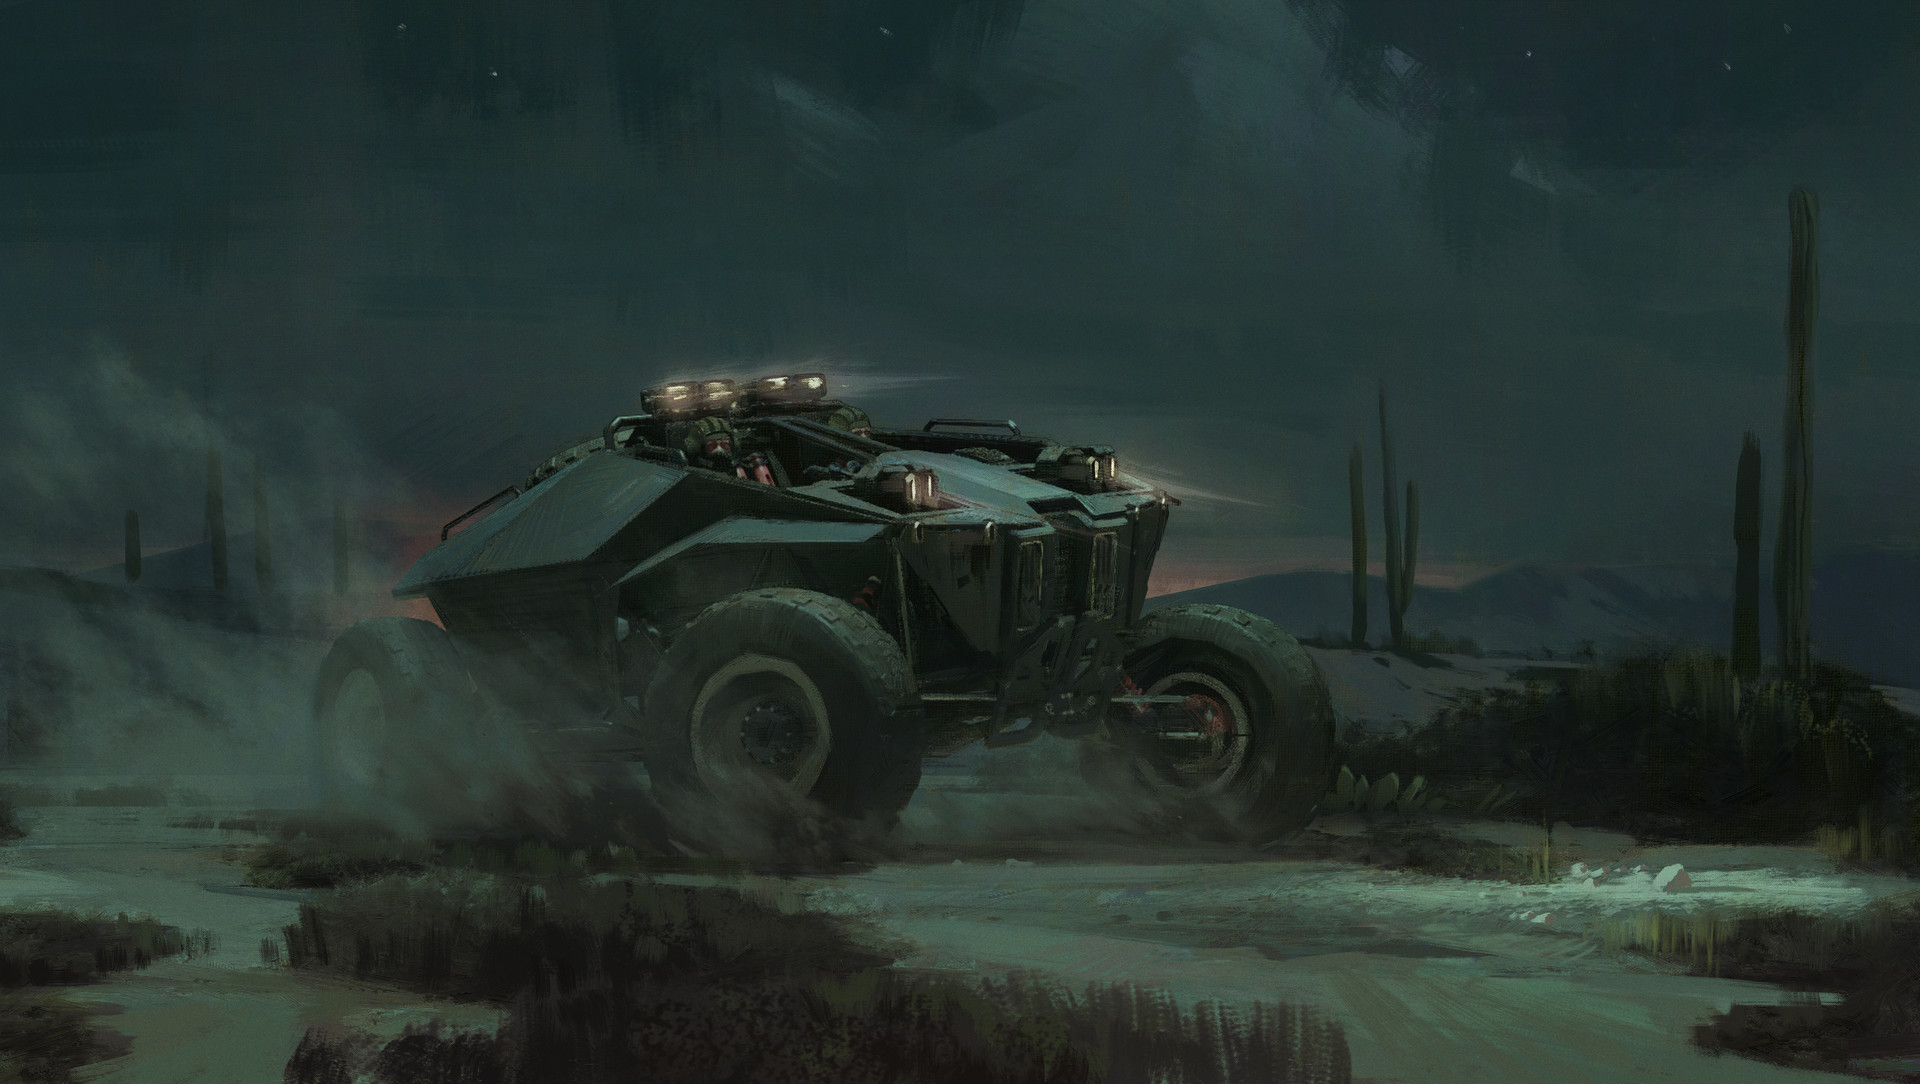 Nick gindraux buggy2